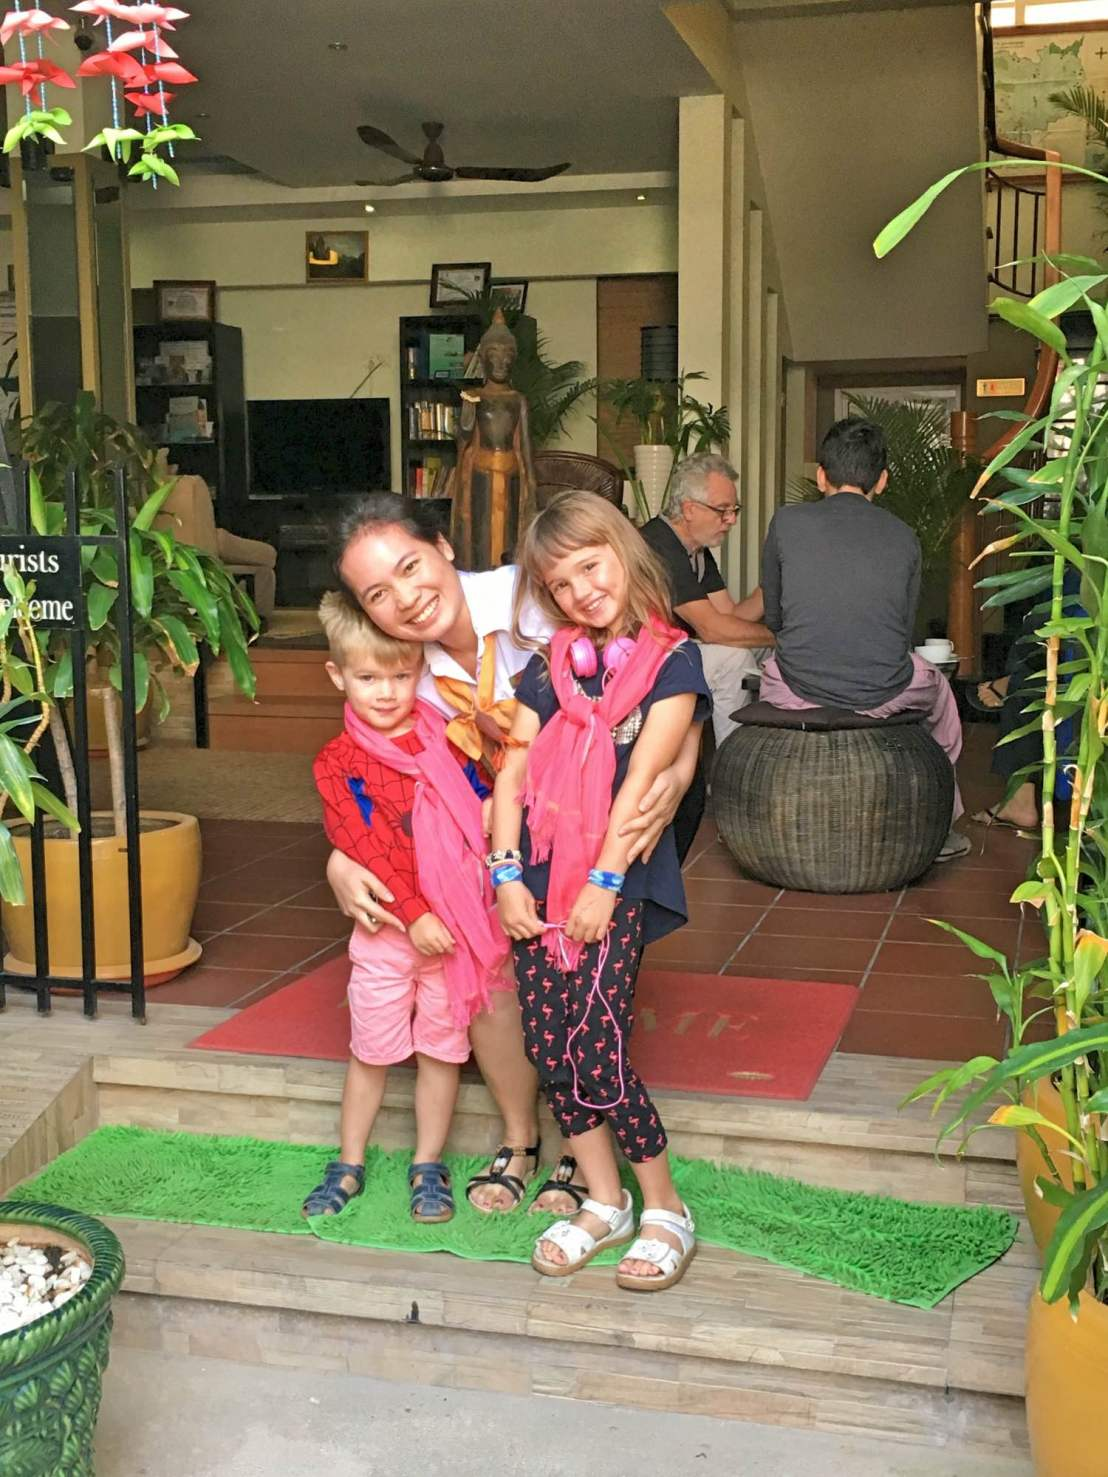 Our kids with their scarves saying goodbye at One Up Banana Hotel, Phnom Penh